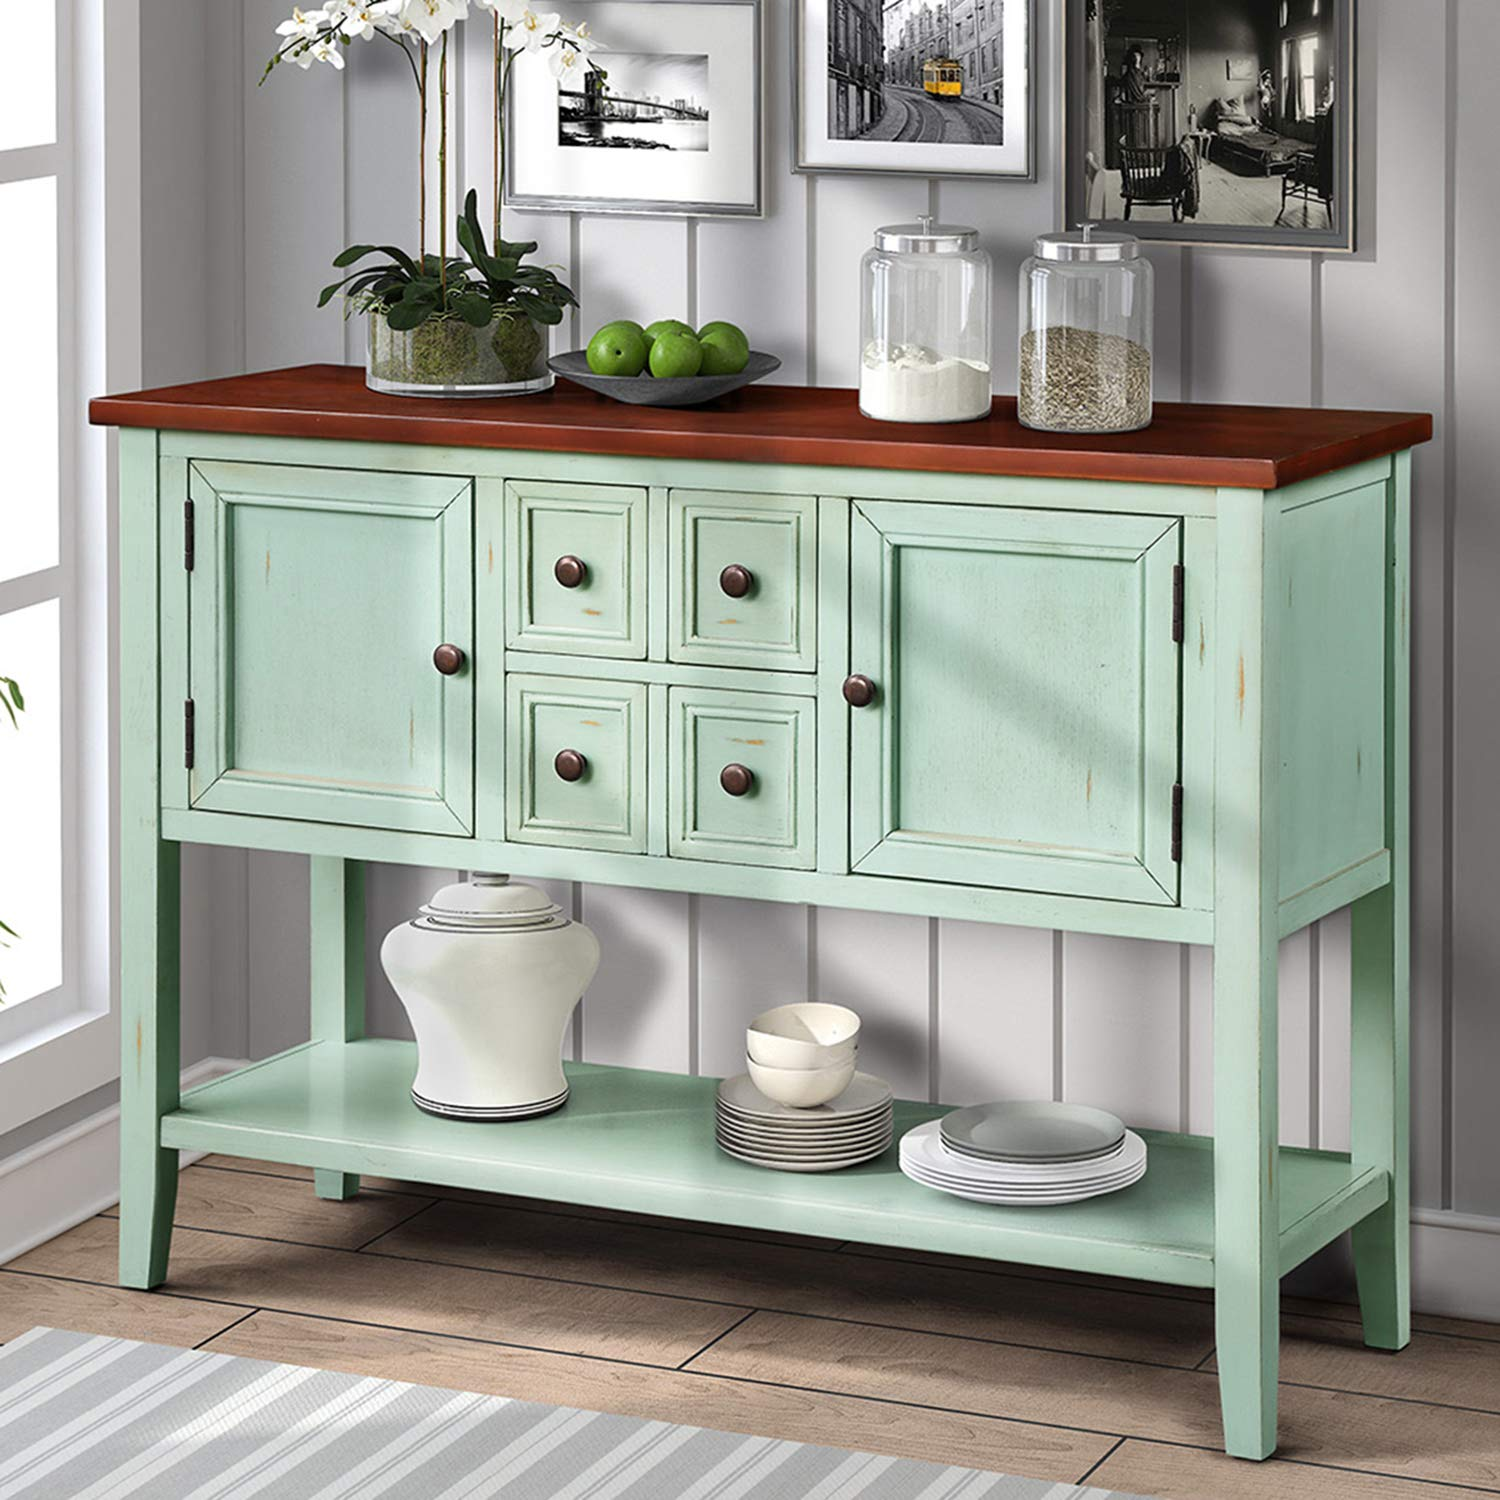 P PURLOVE Console Table Buffet Table Sideboard with Four Storage Drawers Two Cabinets and Bottom Shelf (Blue)